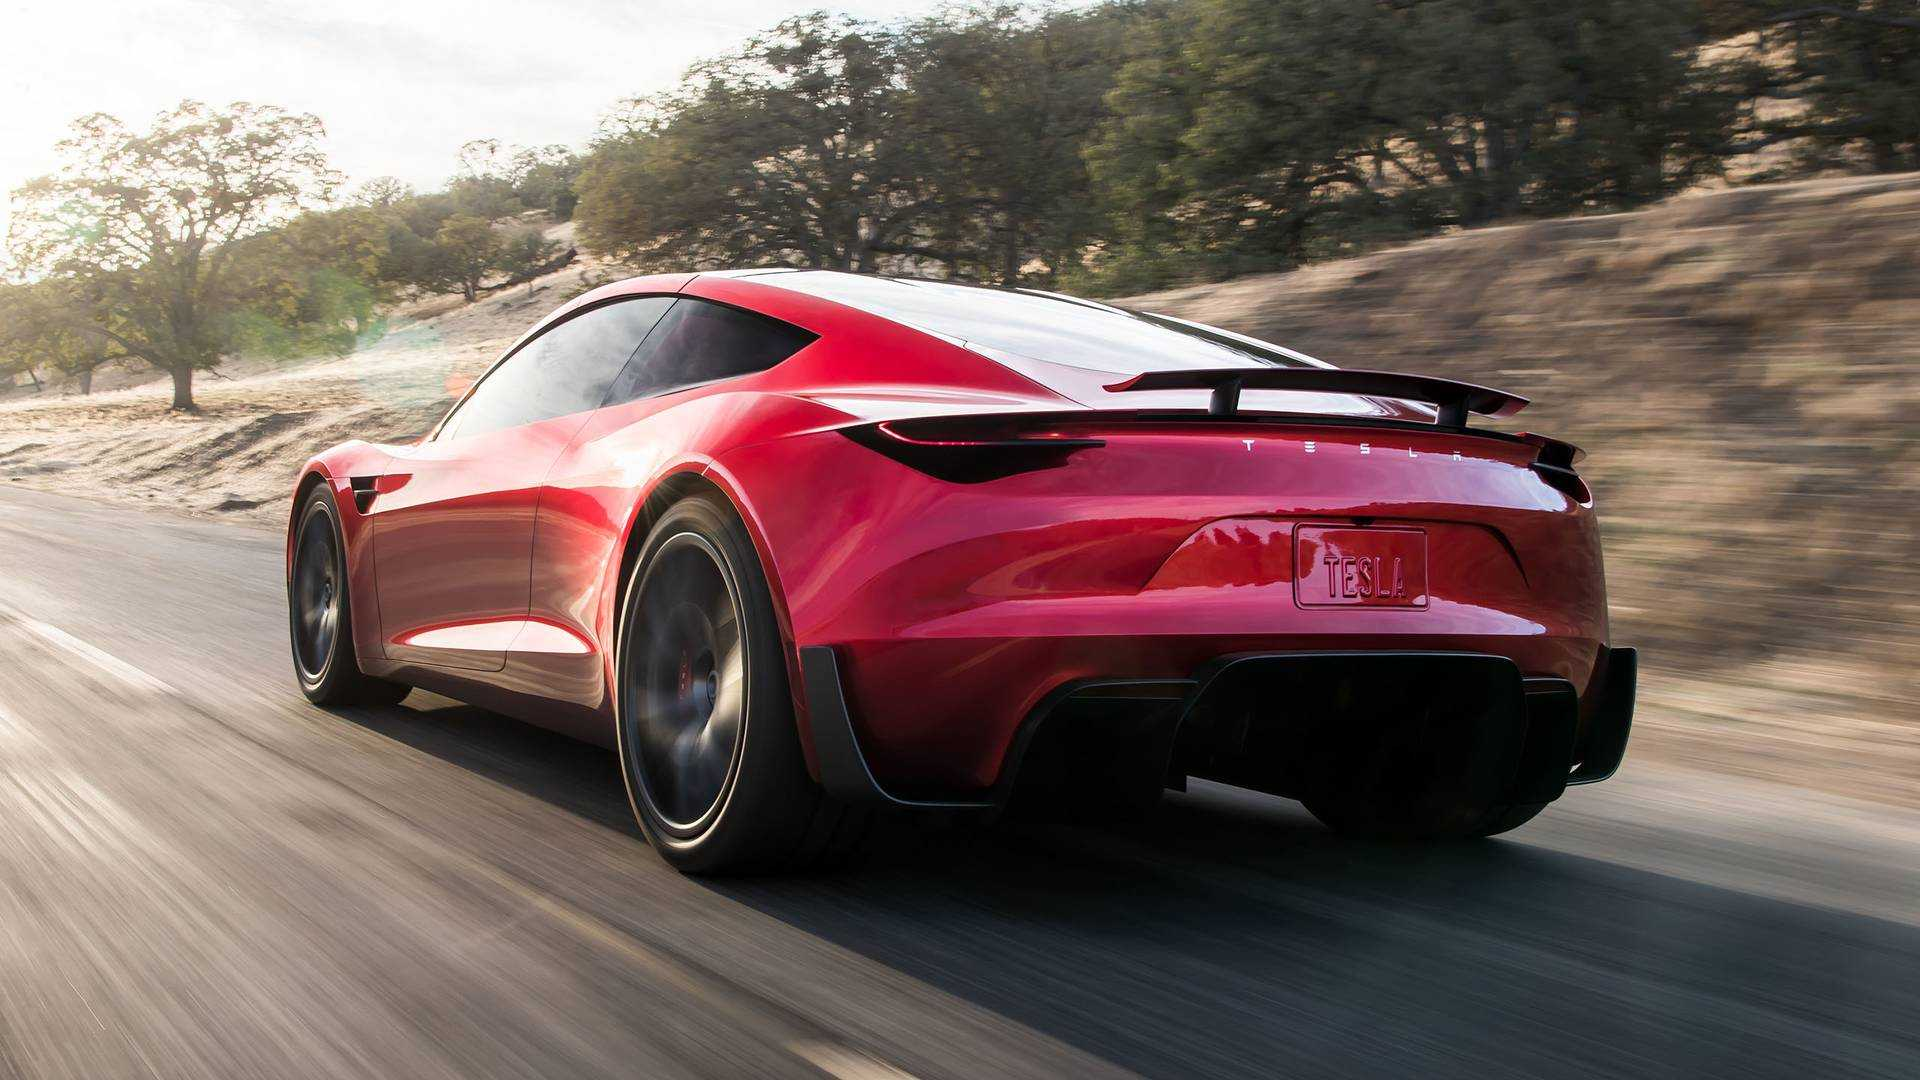 33 The Best 2020 Tesla Roadster 0 60 New Review